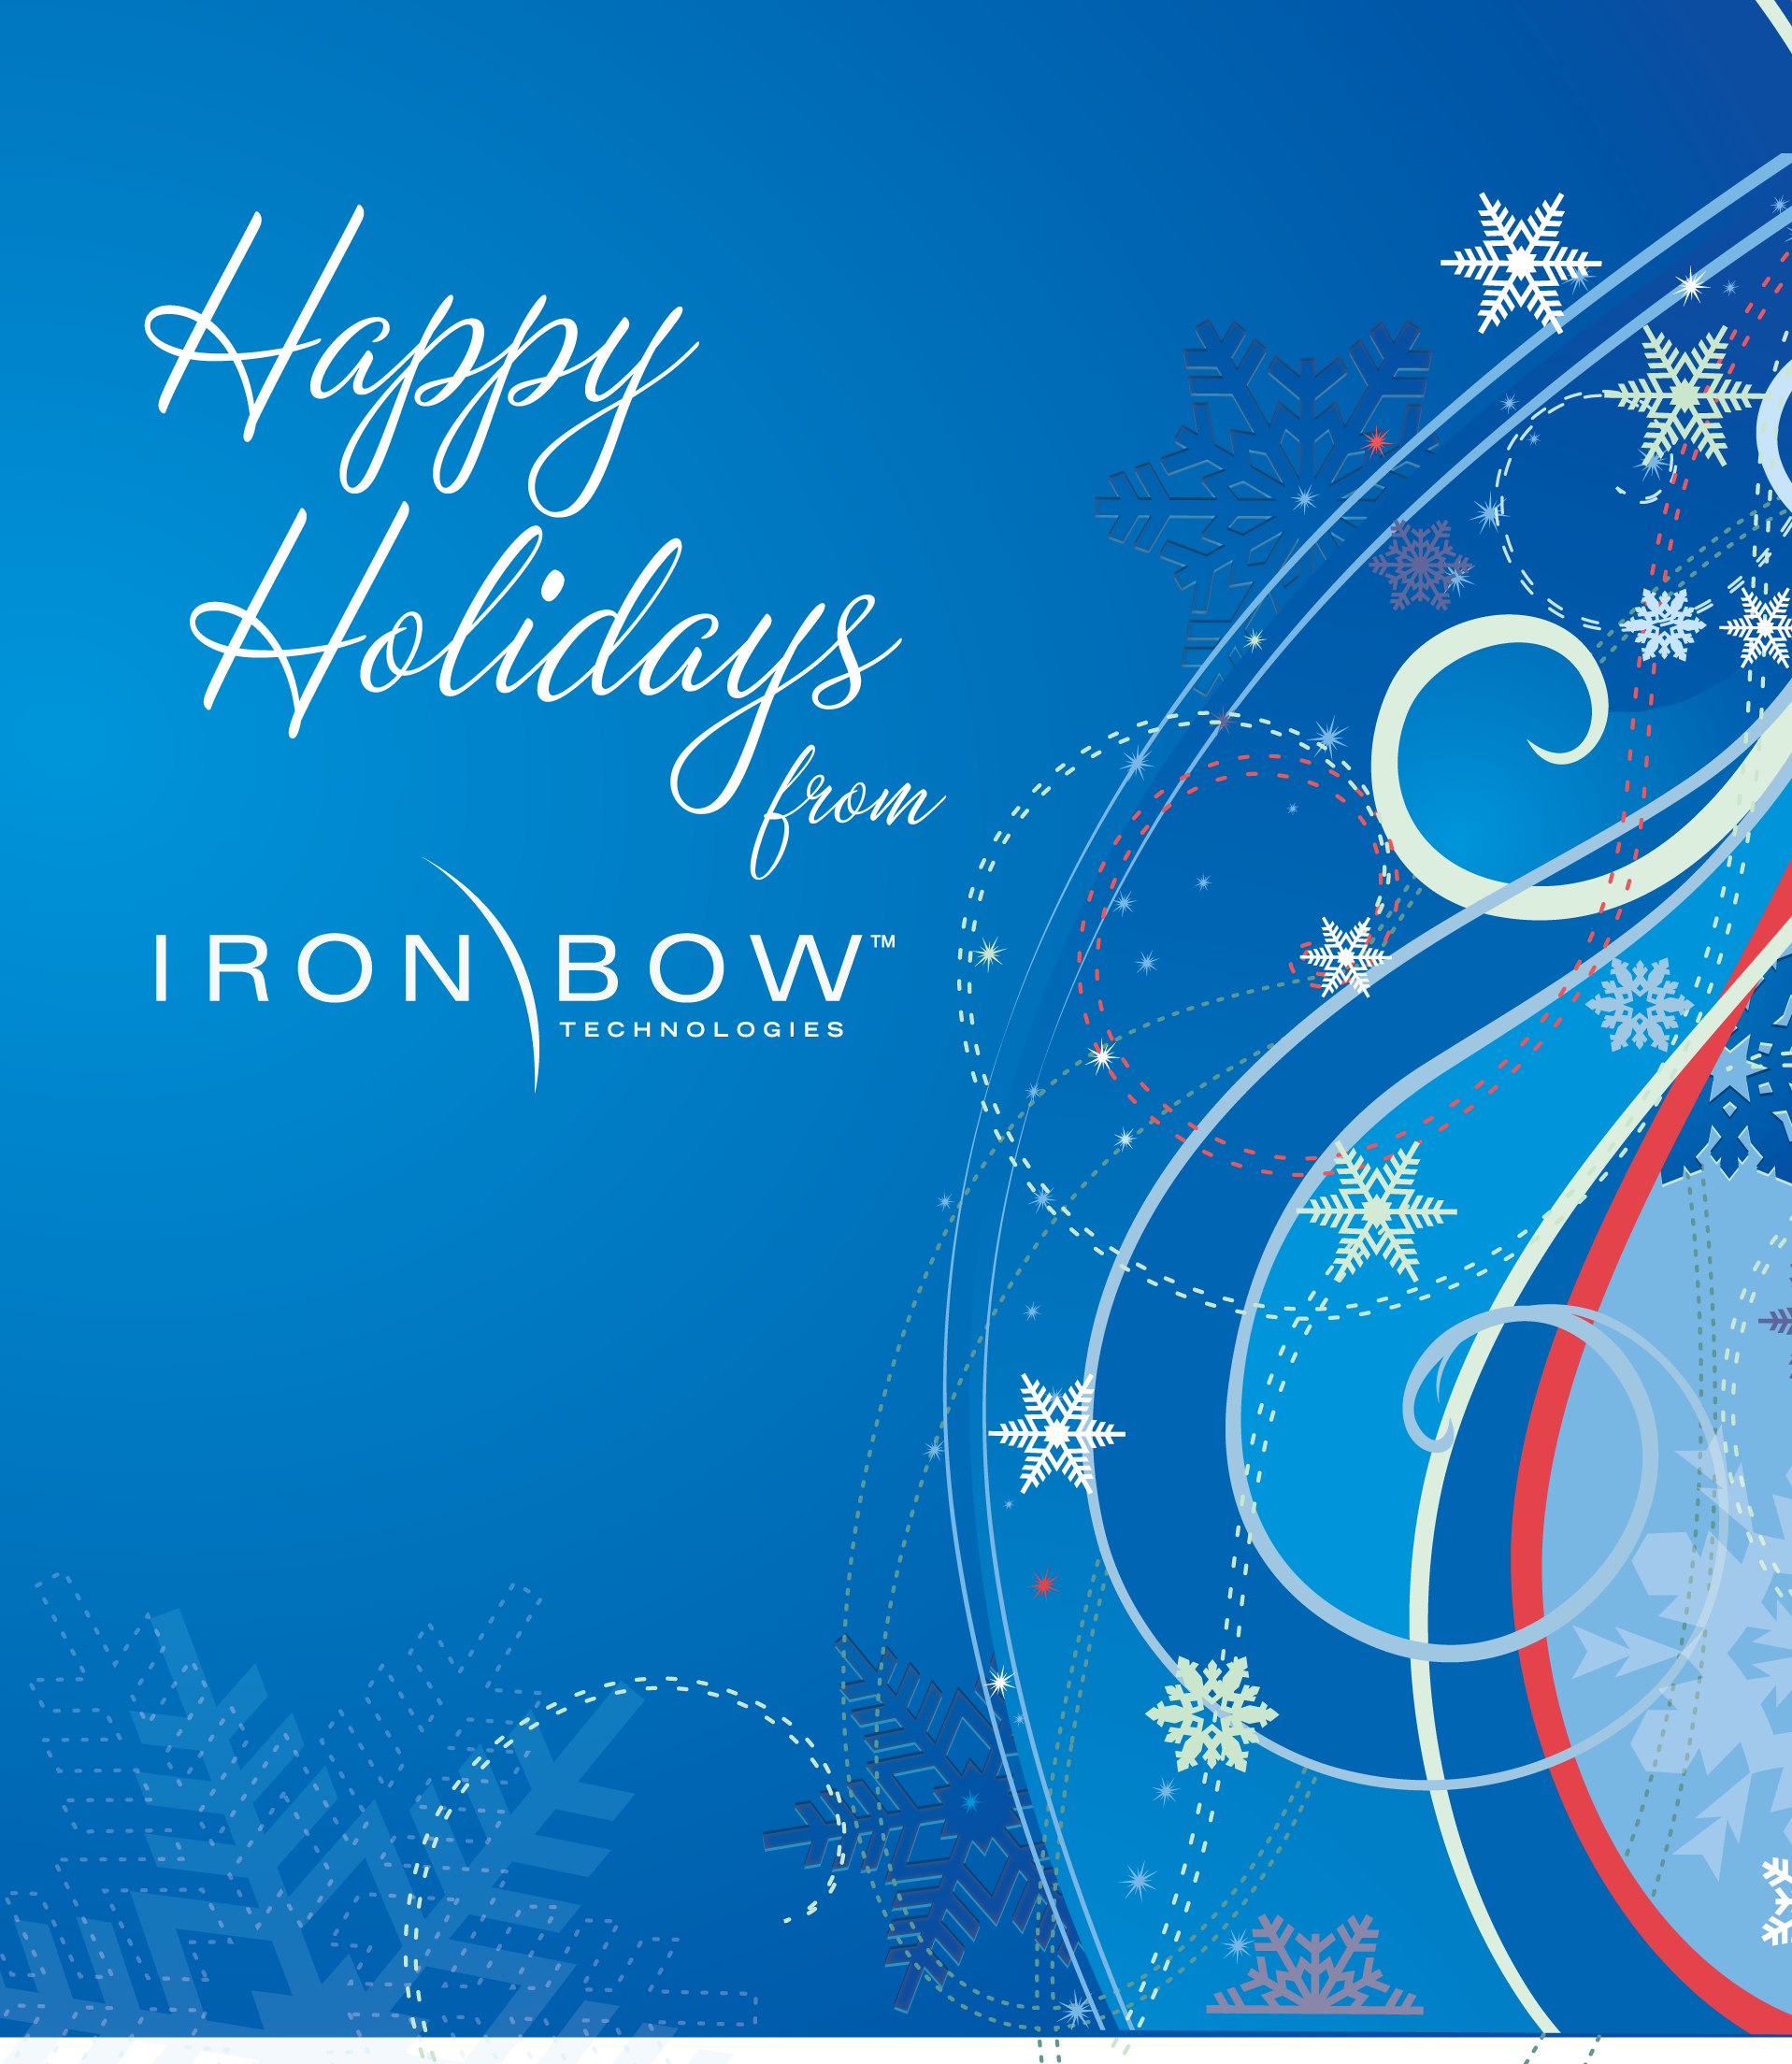 Happy Holidays from Iron Bow Technologies